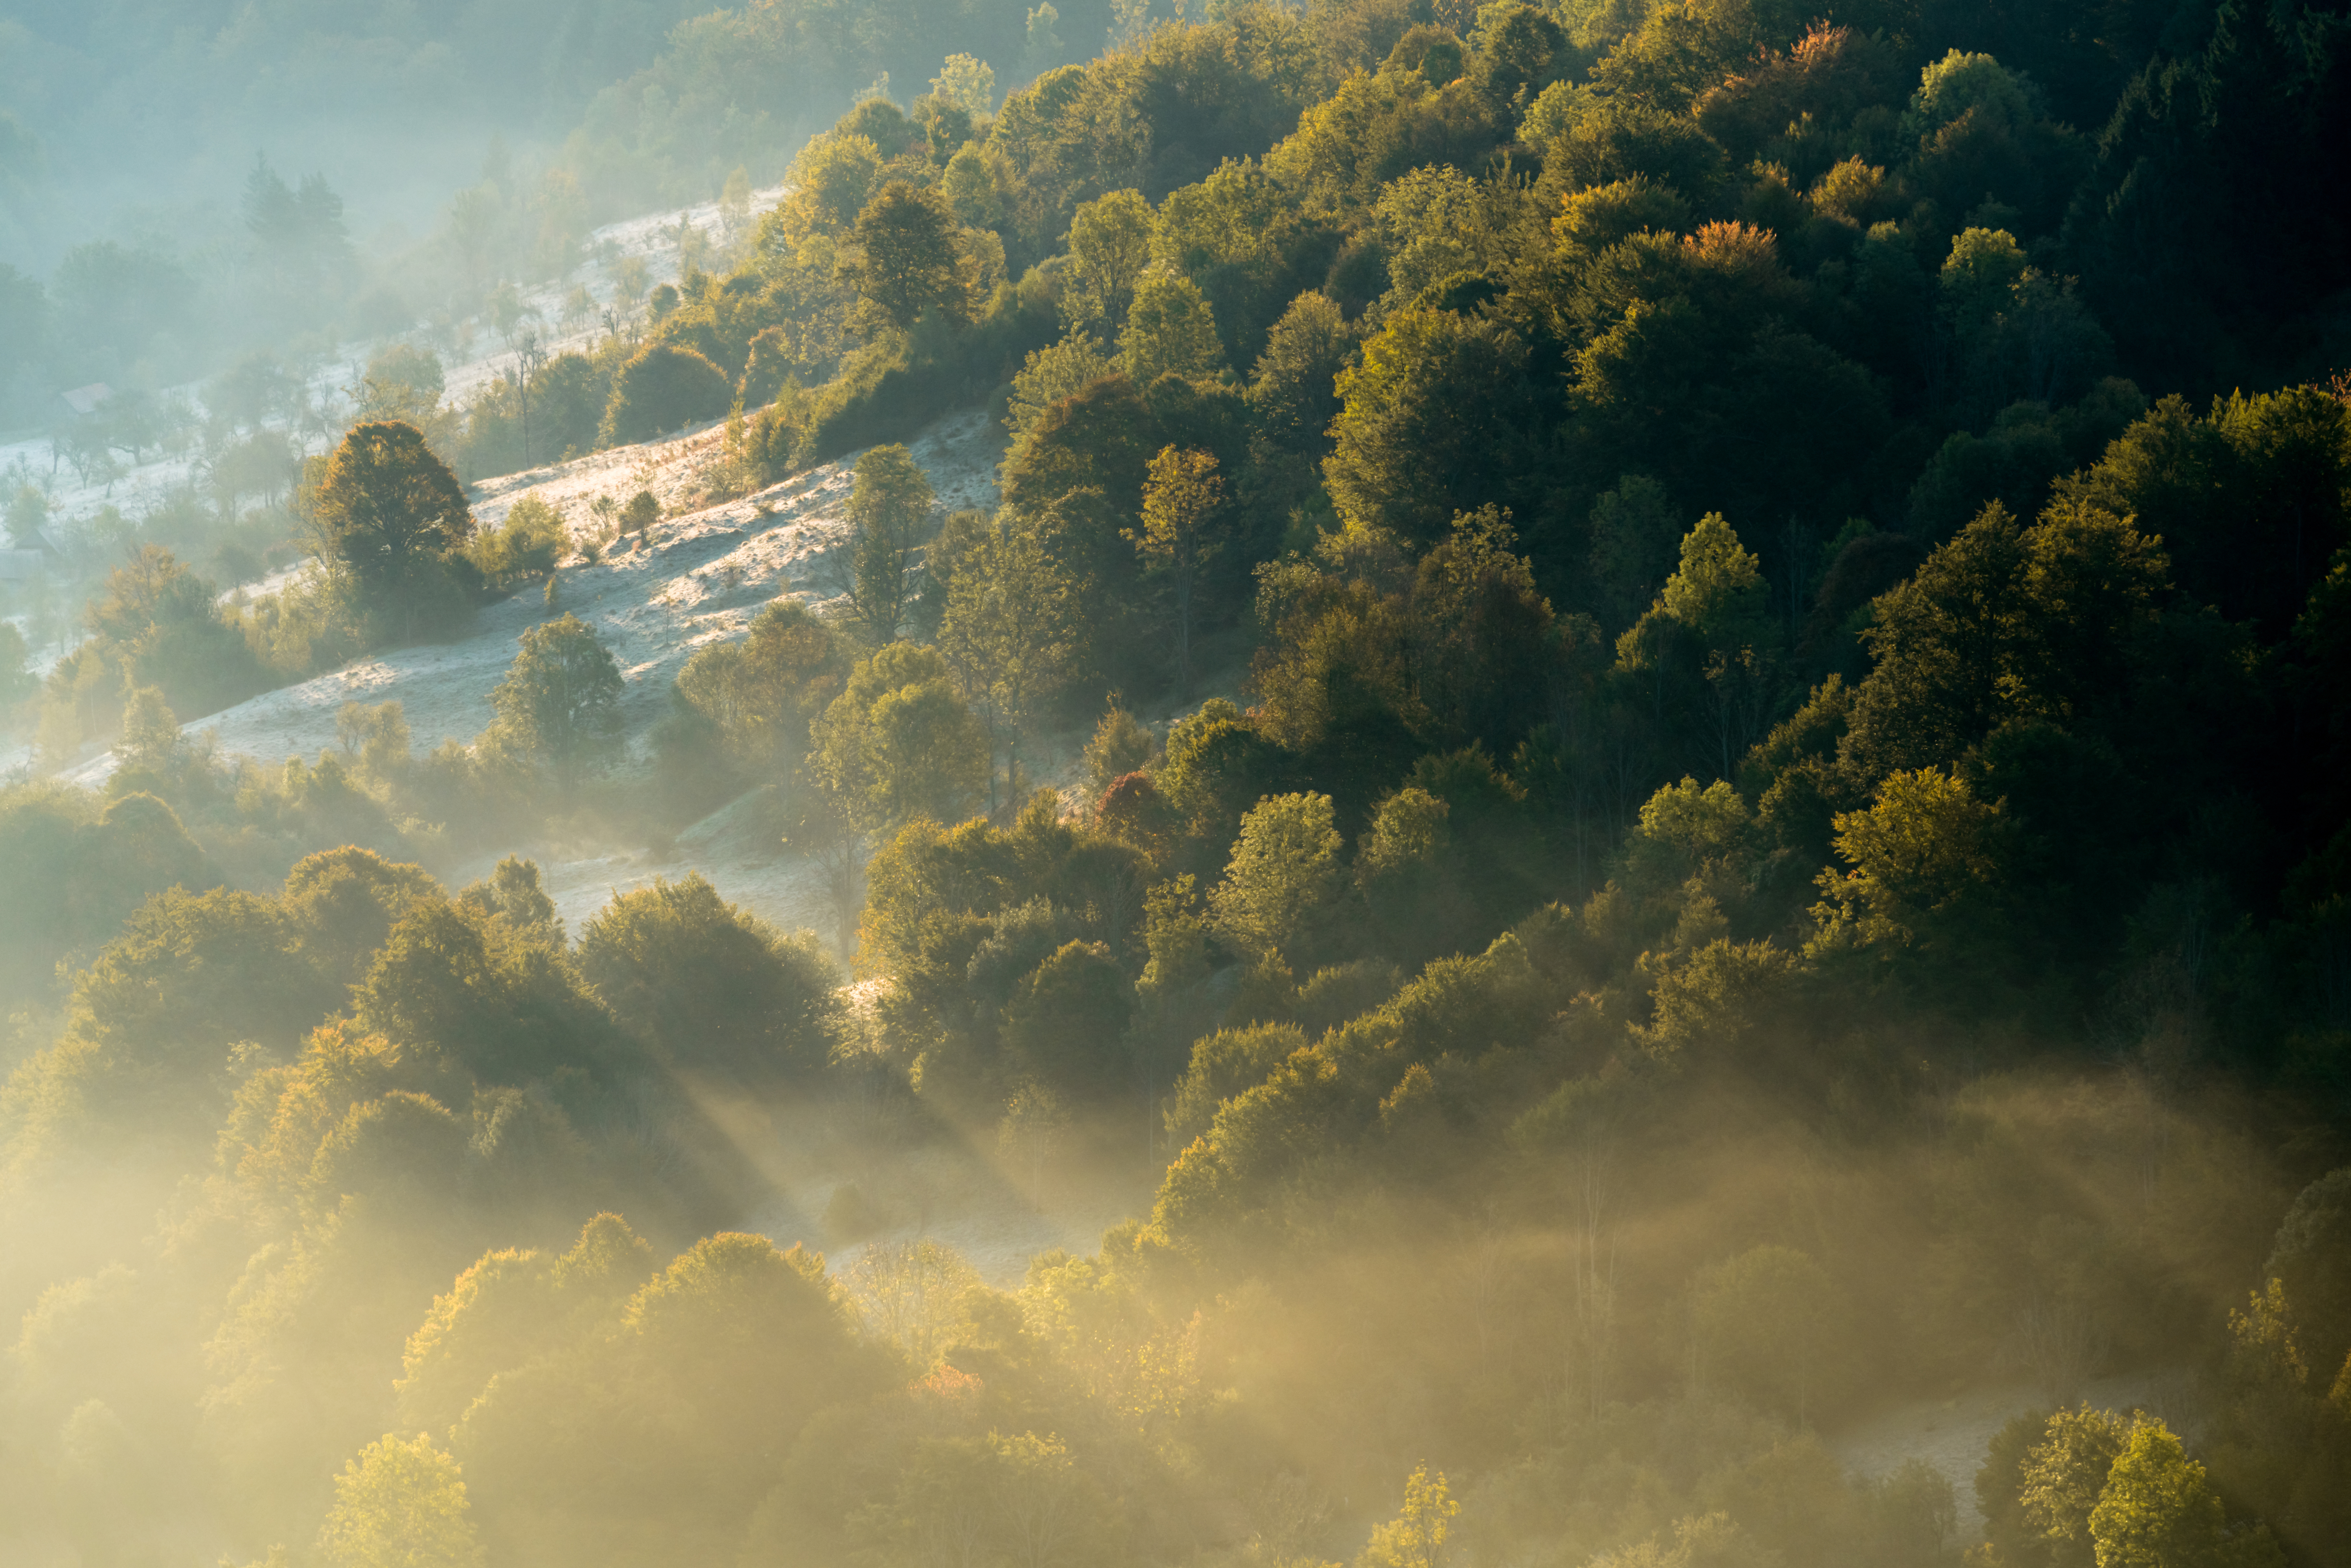 """Photo of the Southern Carpathians rewilding area by Daniel Mirlea was featured together with the exhibition """"The biggest land mammal in Europe returns to the Southern Carpathian wilderness"""" at the Bucharest Photo Festival."""